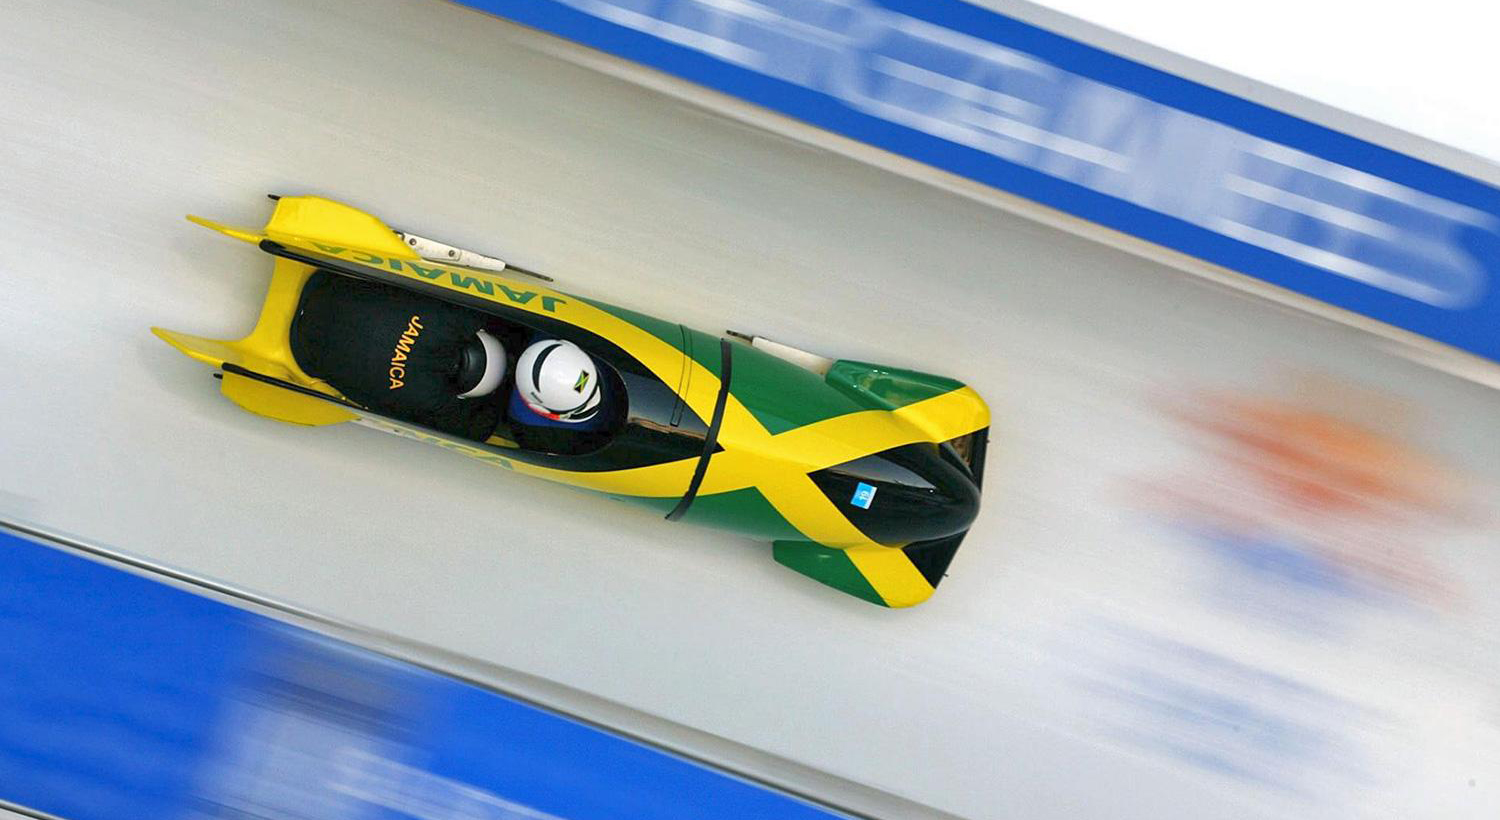 Dogecoin-funded Jamaican bobsled team recovers lost equipment